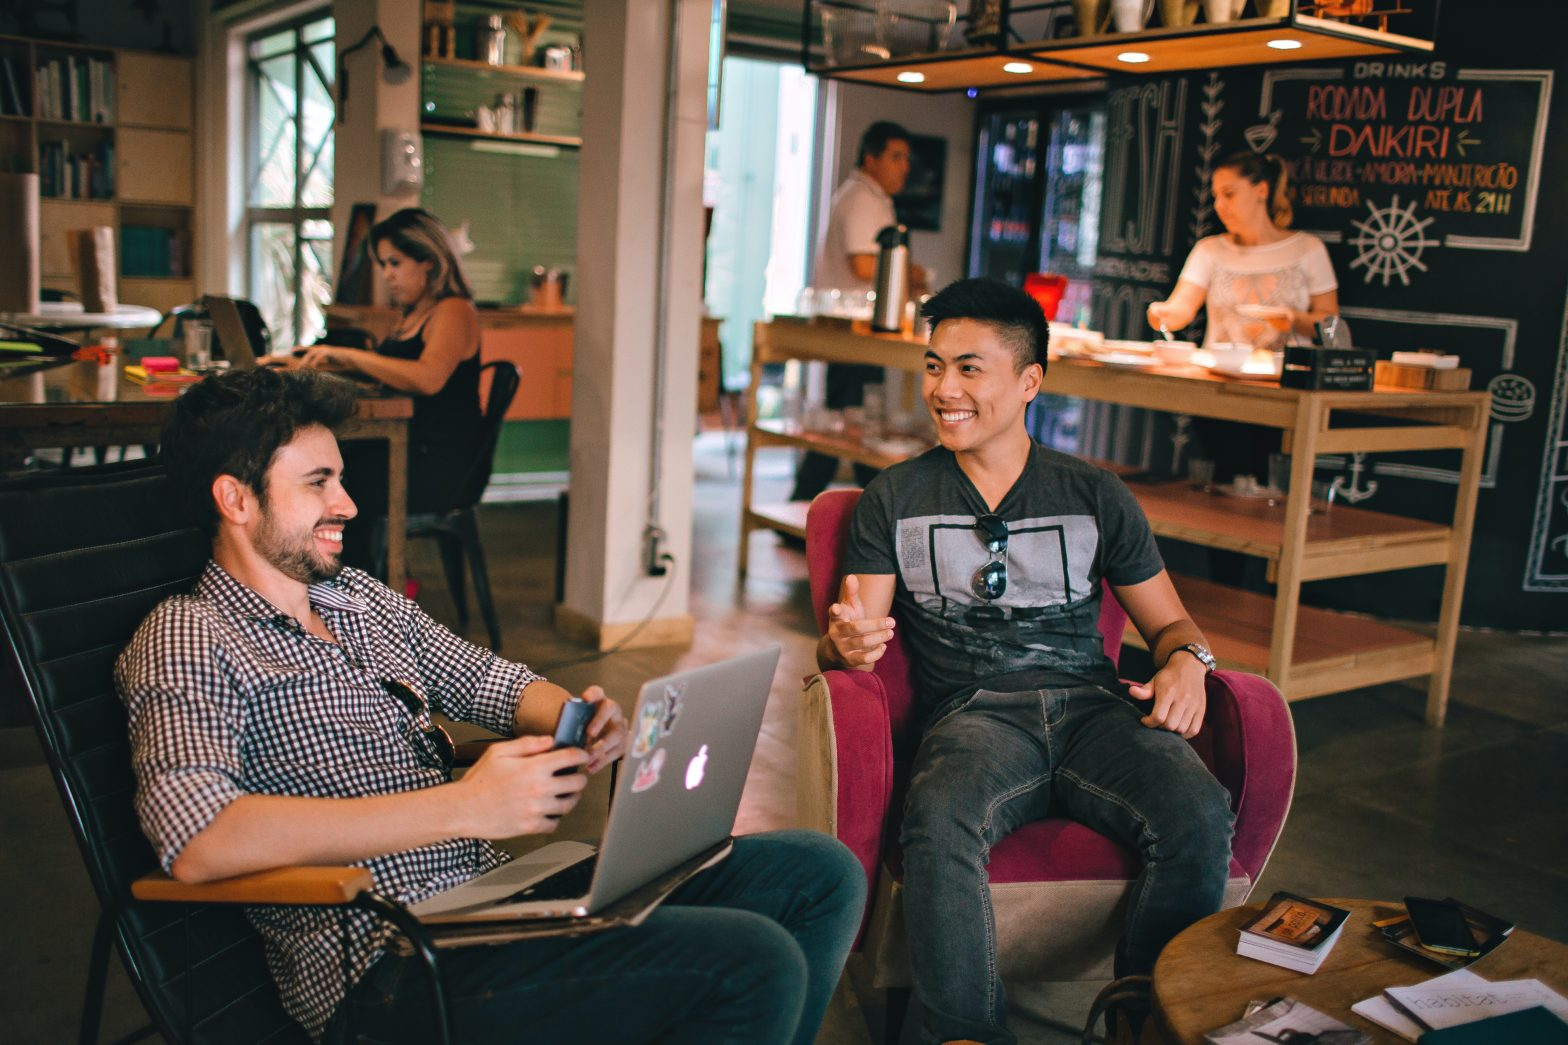 finding community anywhere you go as you work from coliving spaces and coworking spaces.